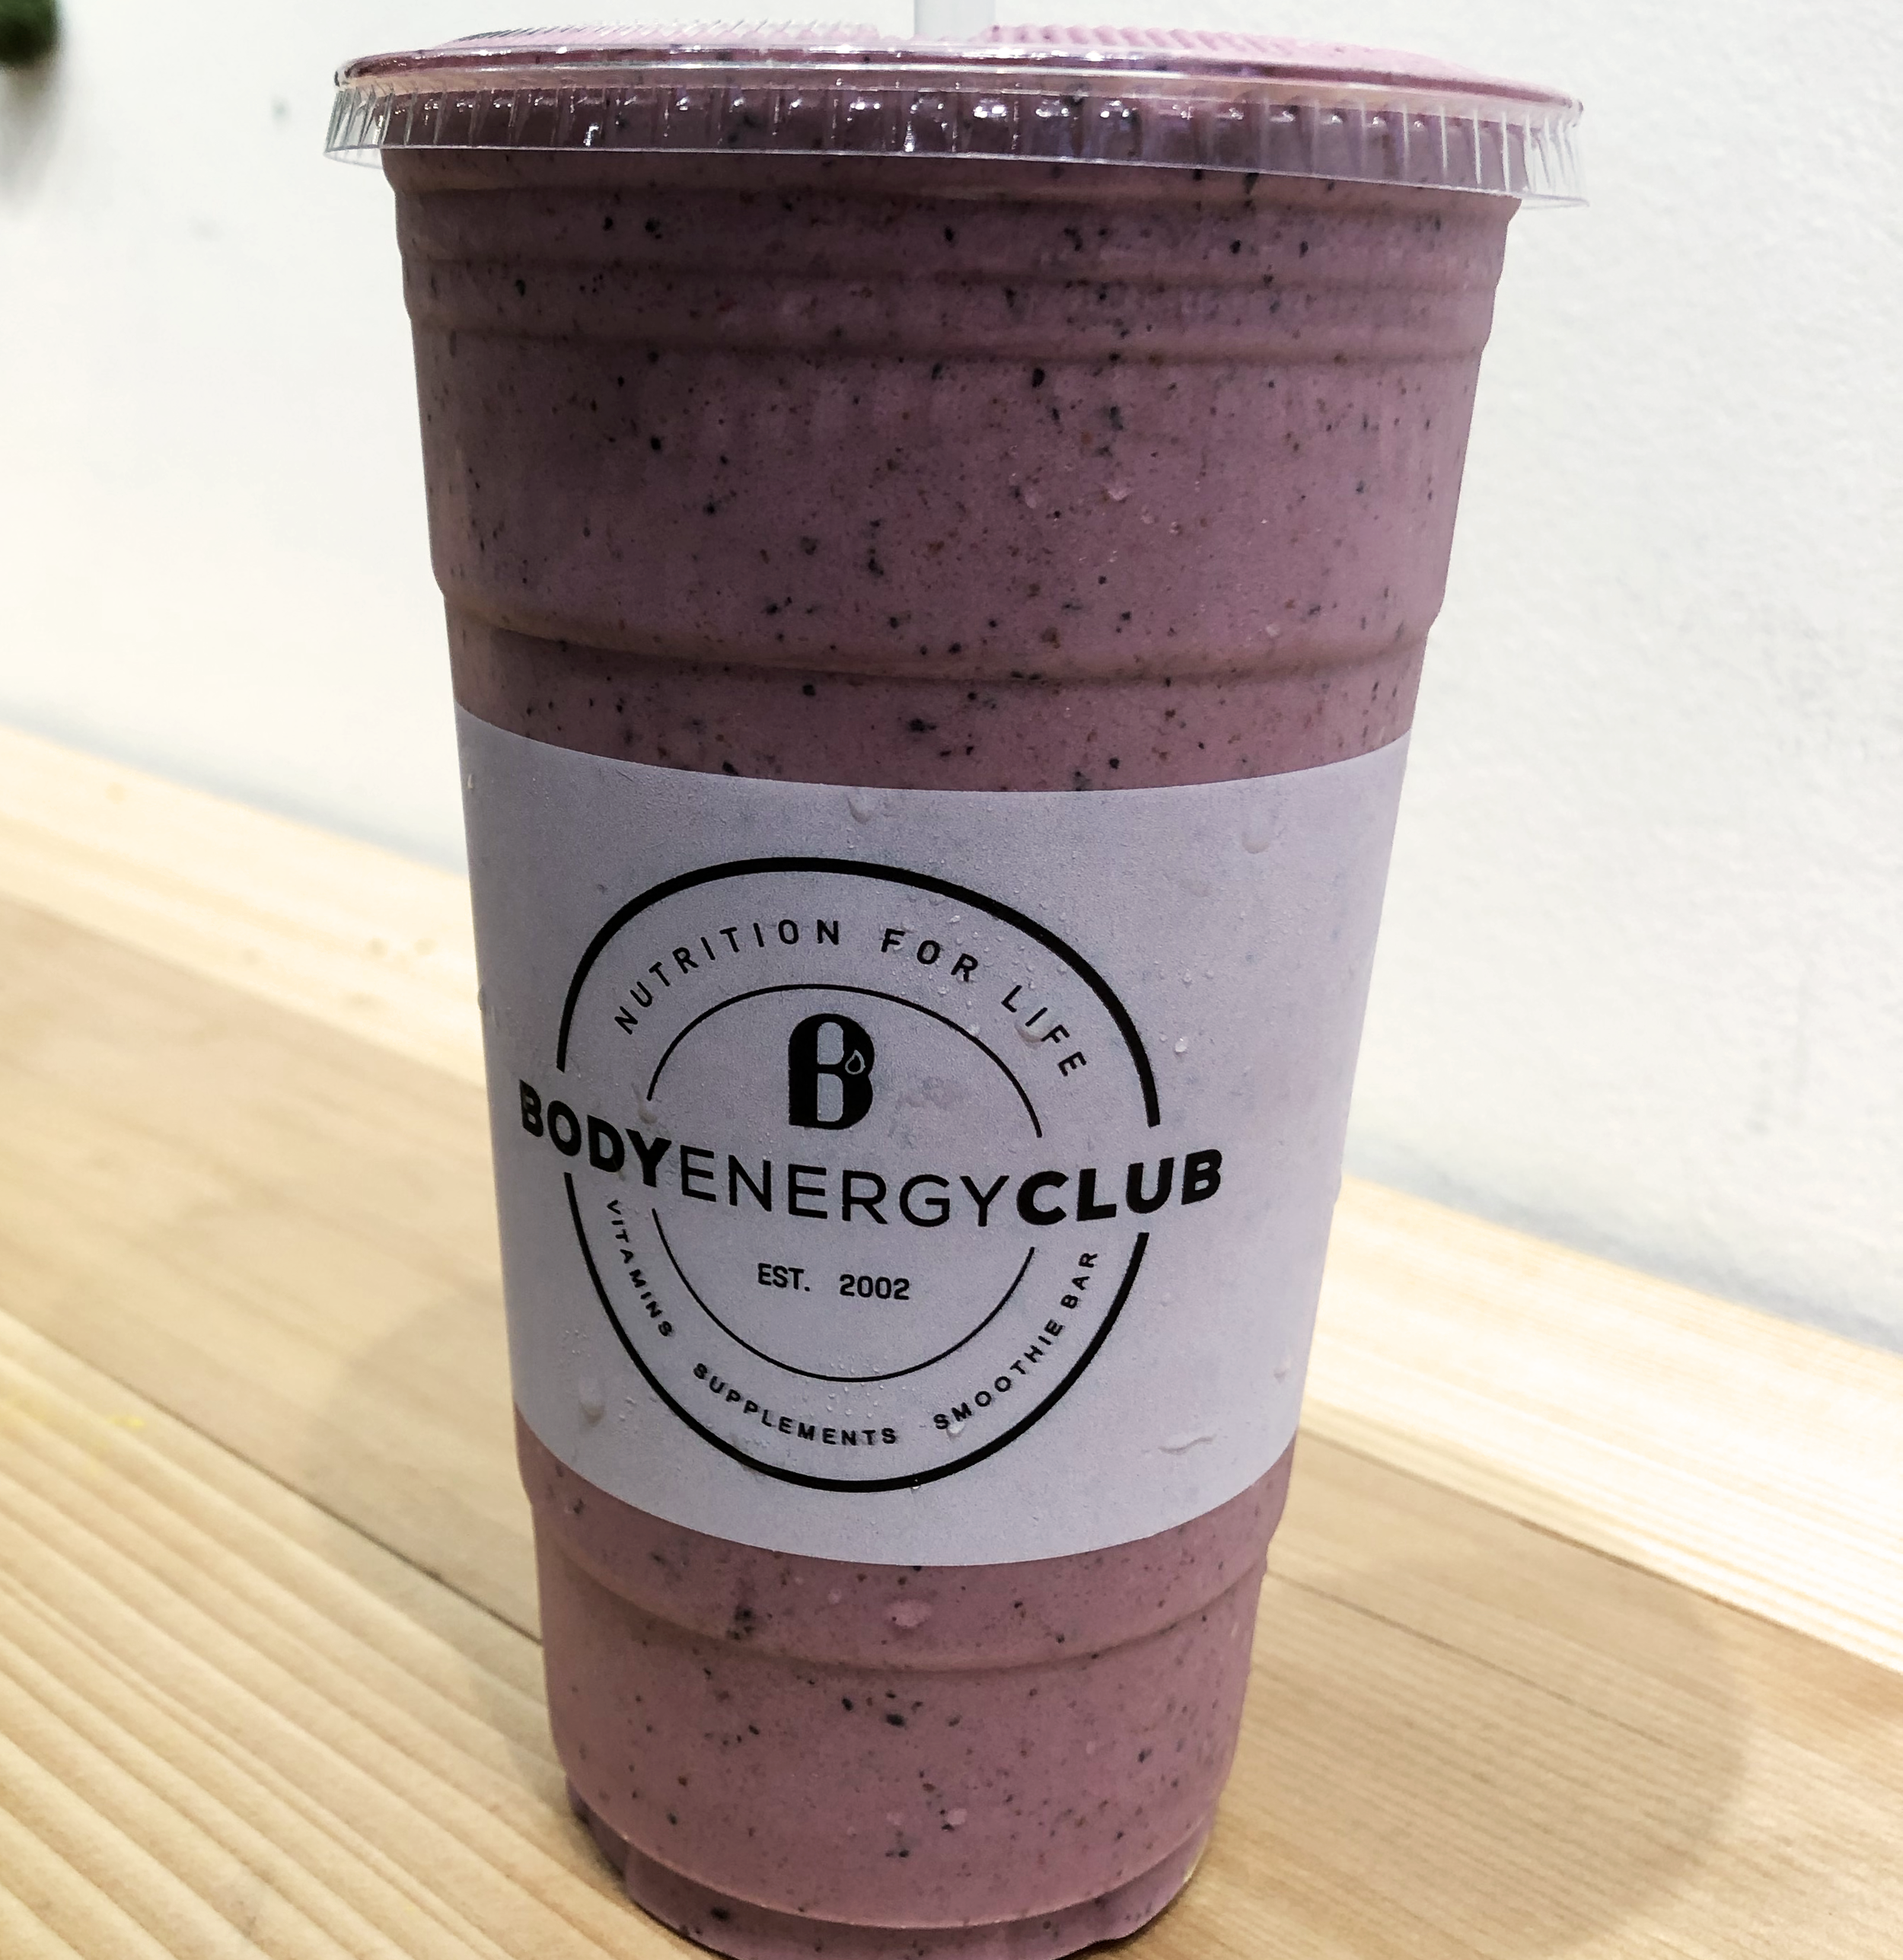 "Lunch: PB&J smoothie - FYI I took a 40 minute bus trip just to get this smoothie. Friday was a particularly emotional day for me though and I needed an excuse to leave the house, so I think this smoothie was warranted and should be filed under the ""self-care"" category."